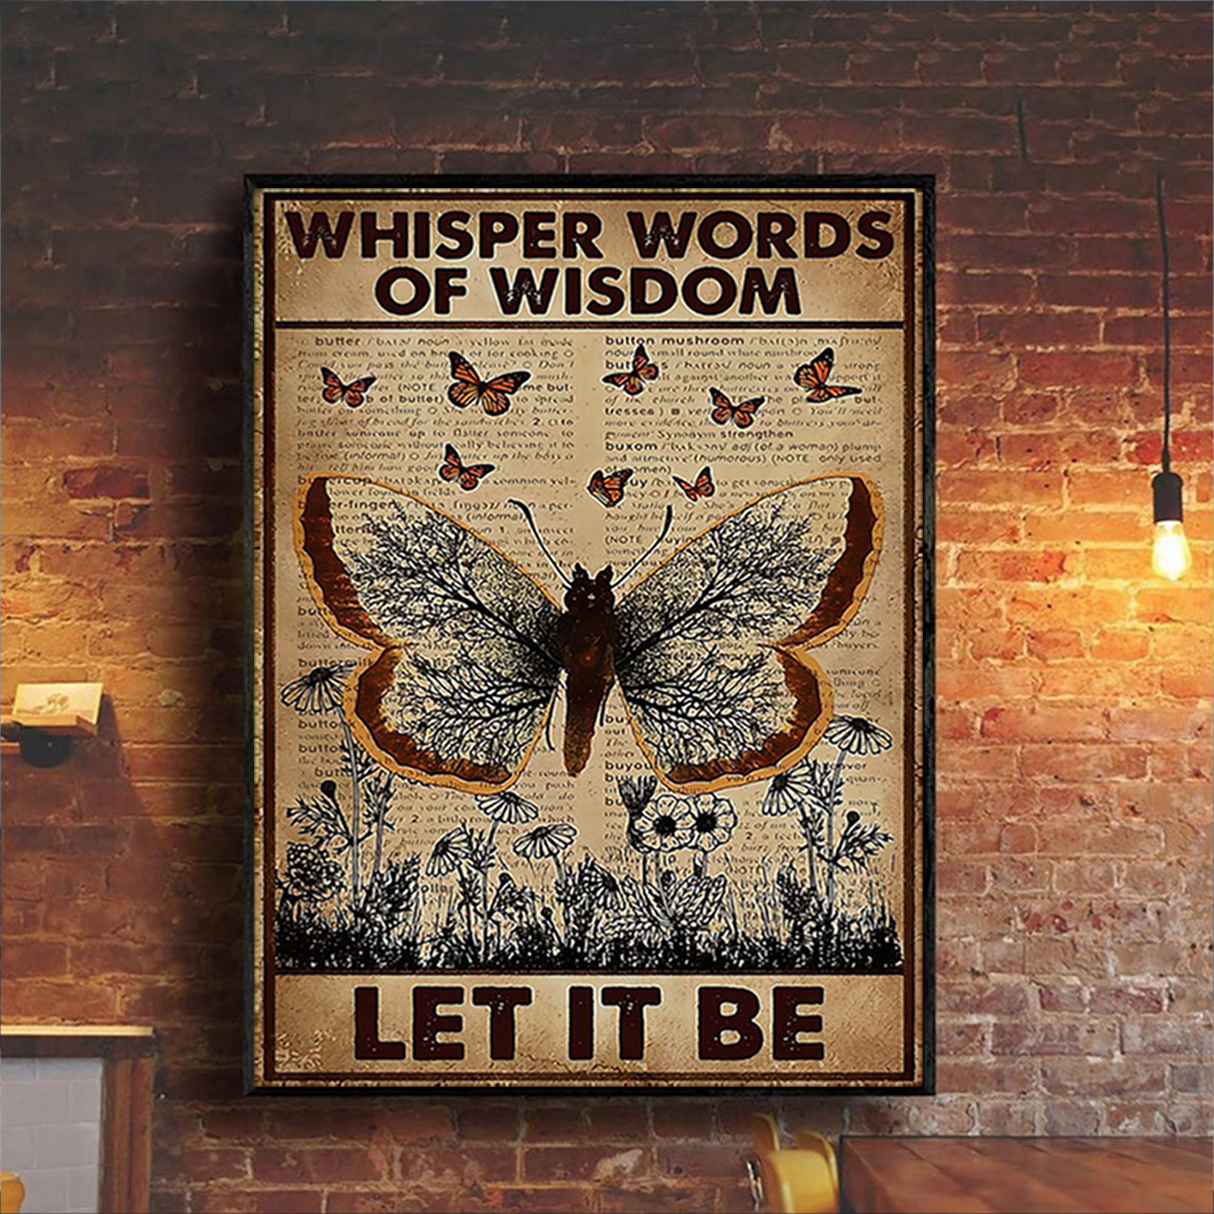 Butterfly whisper words of wisdom let it be poster A3